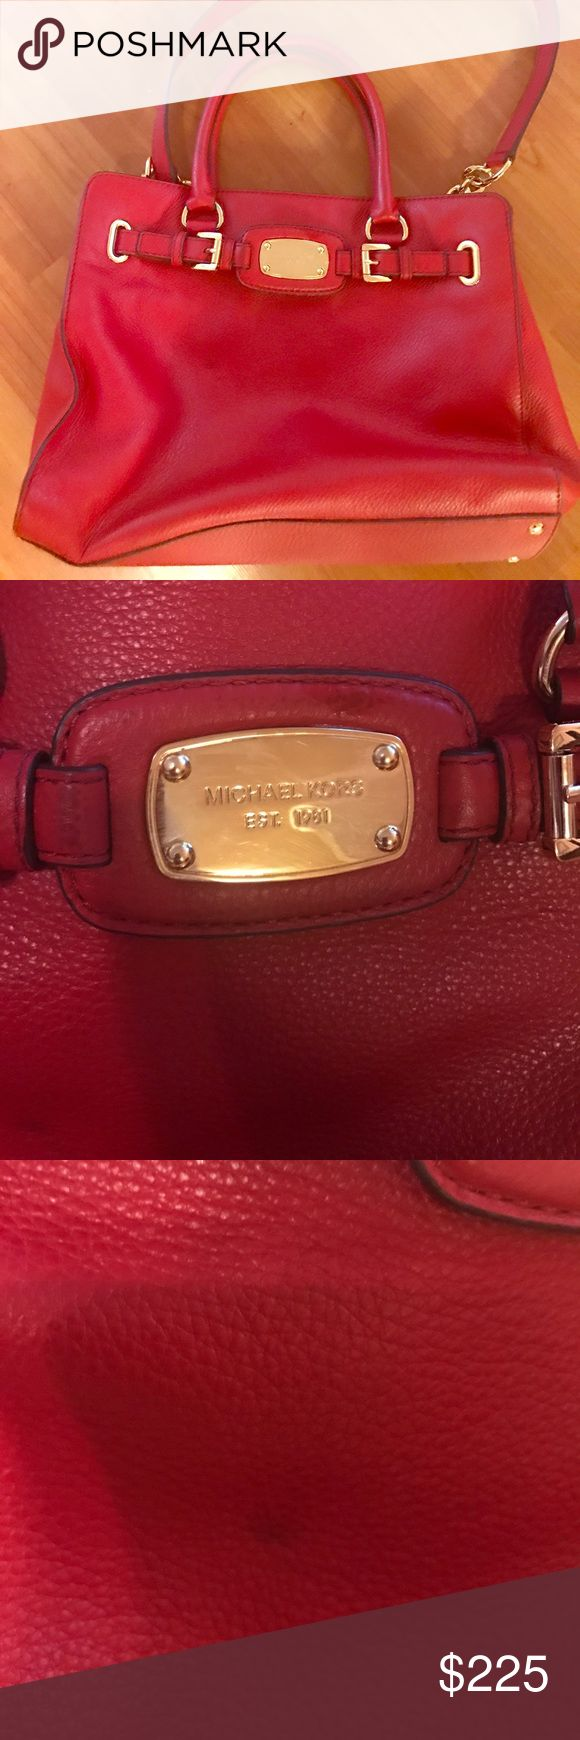 Michael Kors Red Handbag Gorgeous red Michael Kors Handbag. Has lots of compartments for makeup bag, wallet and phone with slight wear to bag as shown in pictures. Can be worn with handles or the long strap. No tradrs Michael Kors Bags